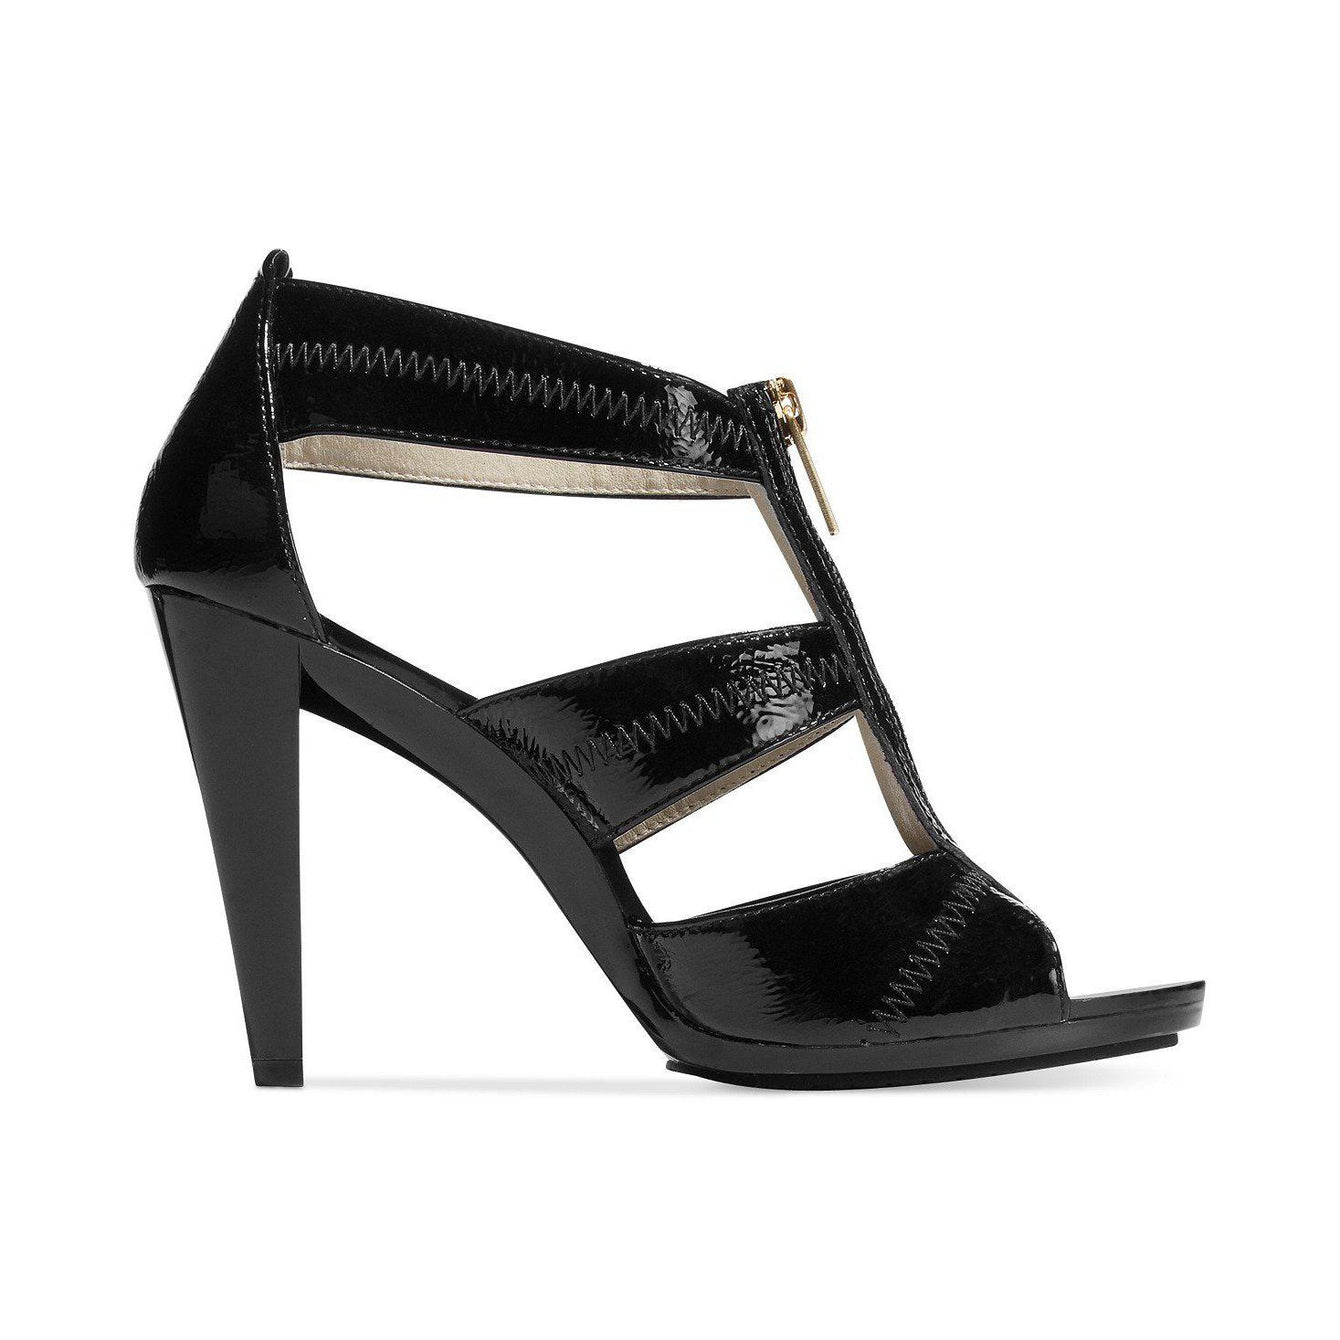 MICHAEL Michael Kors Berkley T-Strap Dress Sandals  Michael Kors  kick-it-shoe-outlet.myshopify.com Kick-it Shoe Outlet Shoes Cheap